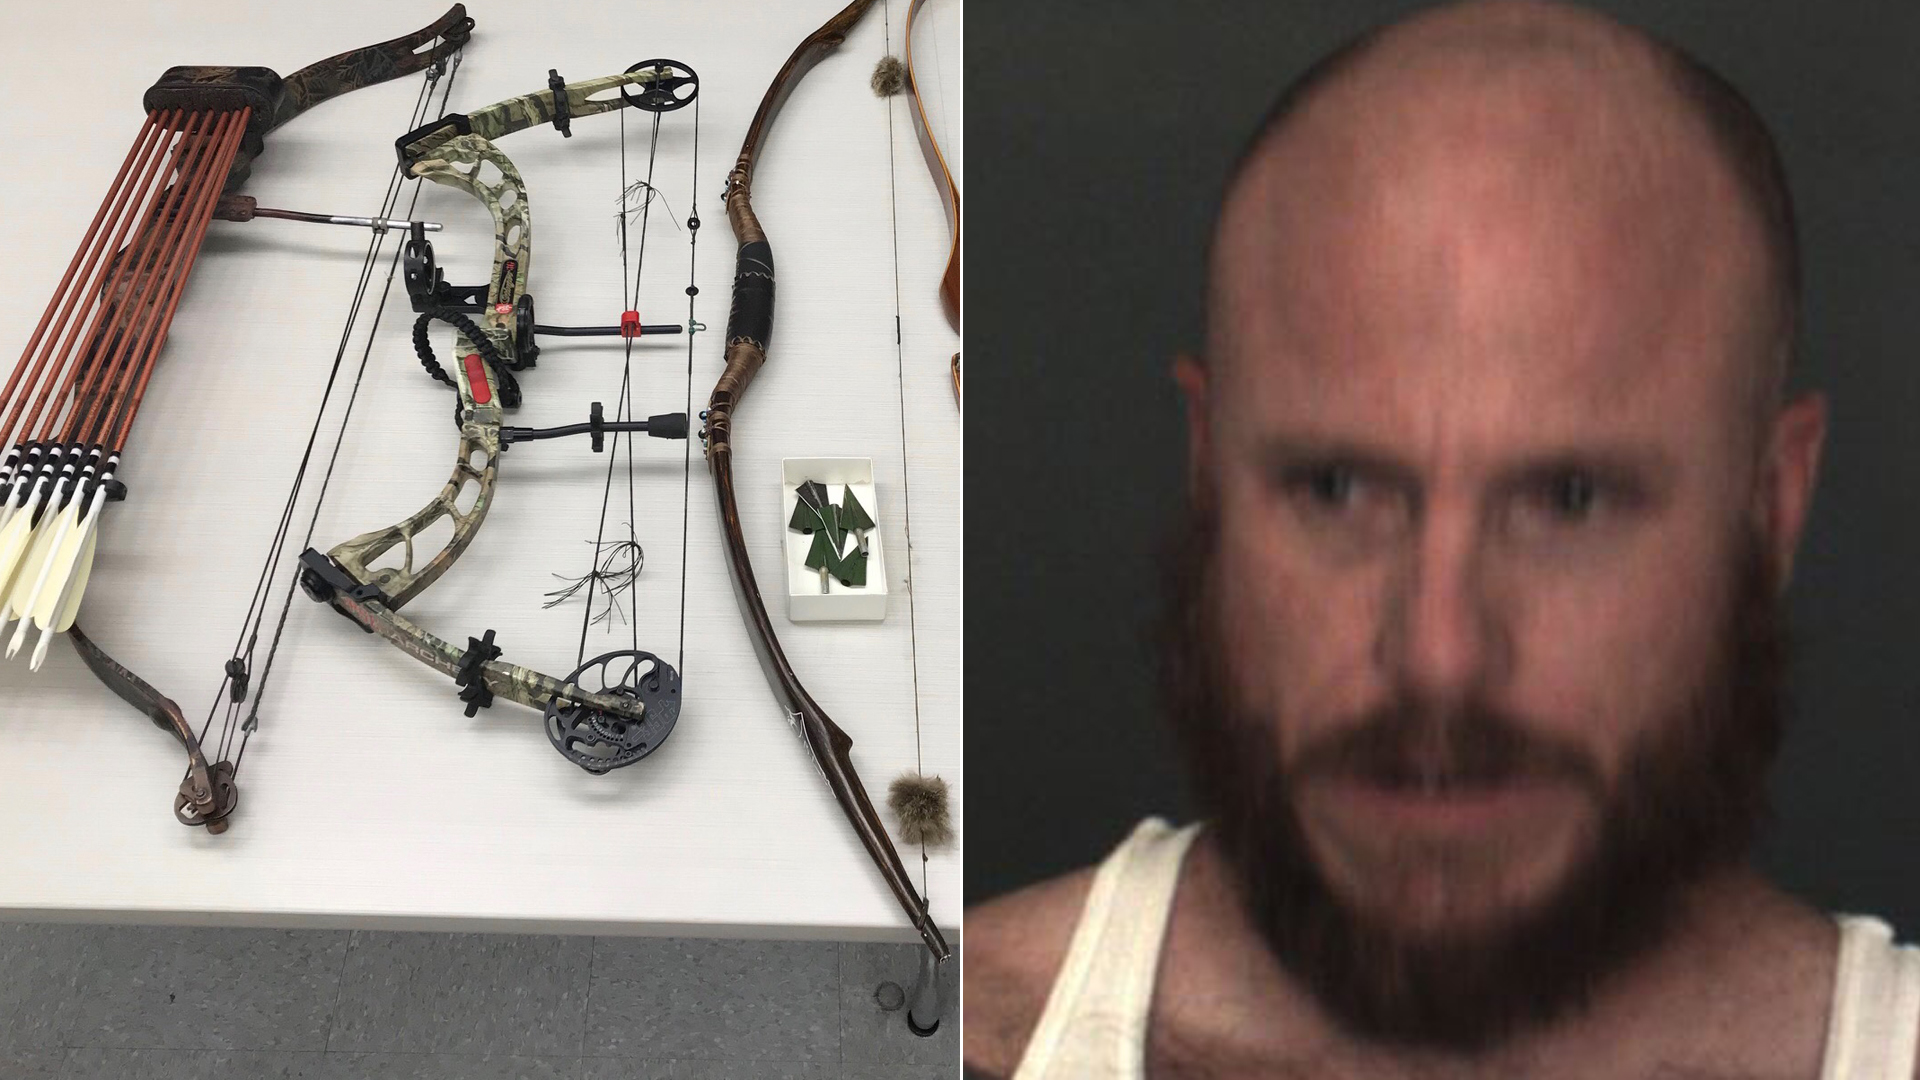 Multiple bows and arrows seized from a Big Bear City residence, and Jathon Frank Musella, appear photos released by the San Bernardino County Sheriff's Department on Aug. 26, 2019.